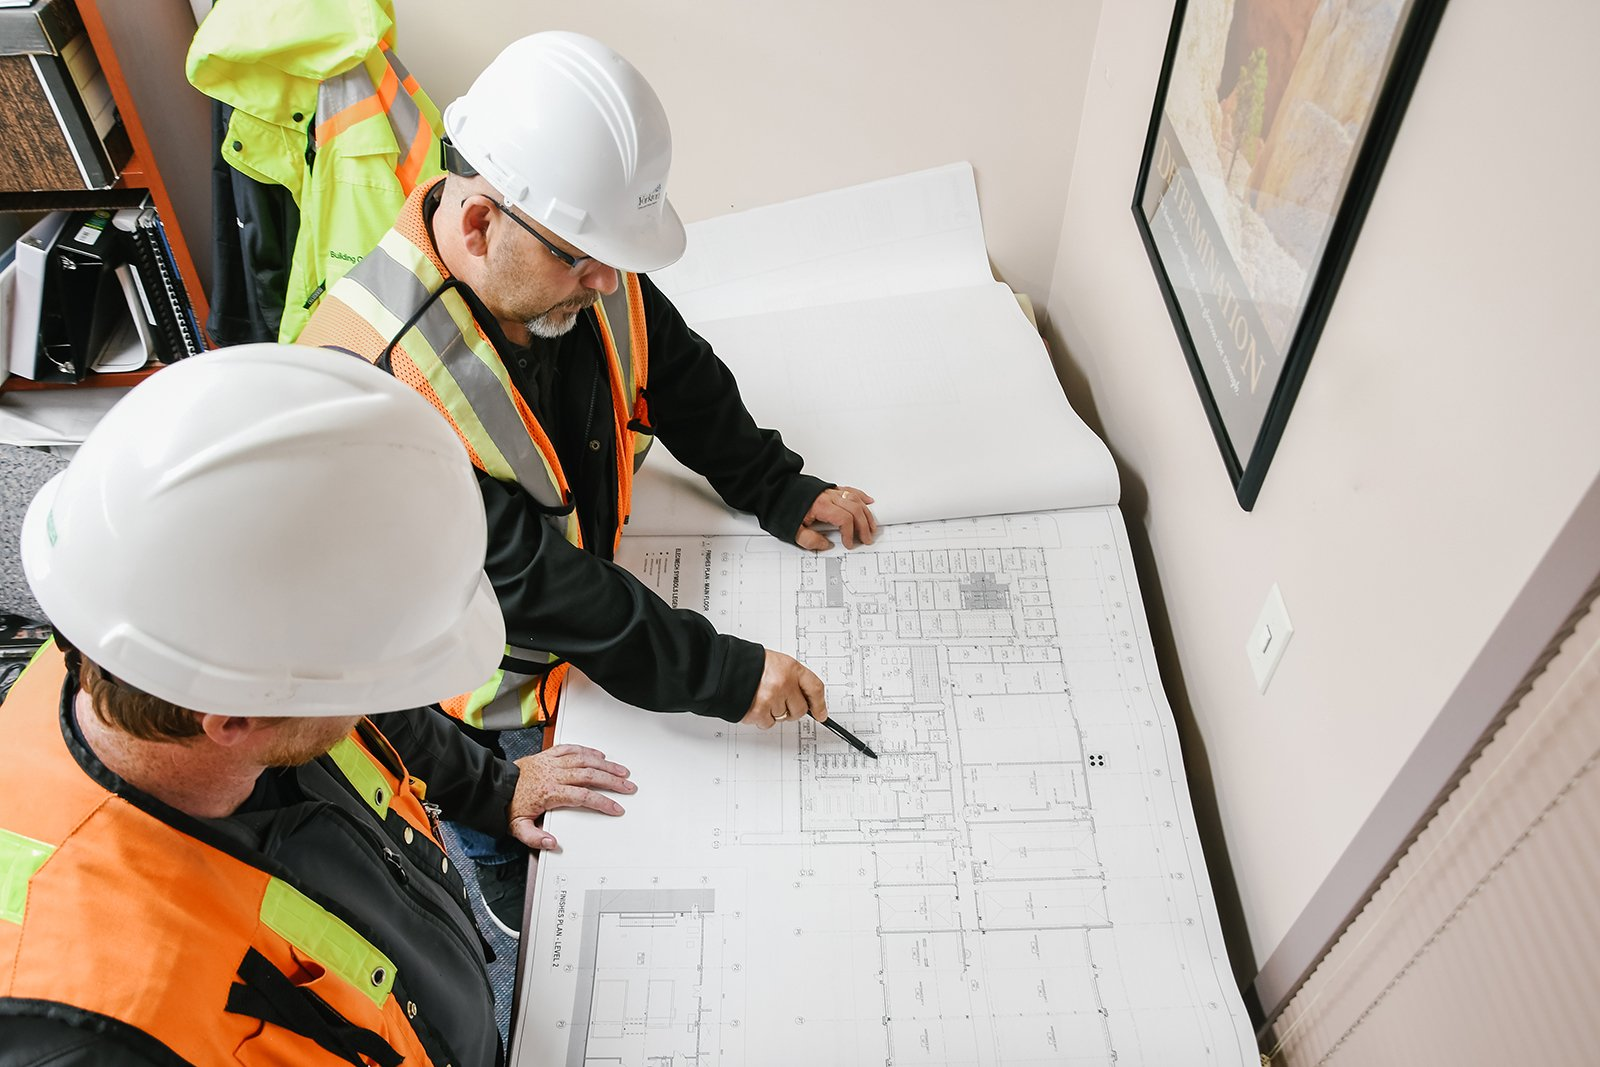 two people looking at plans